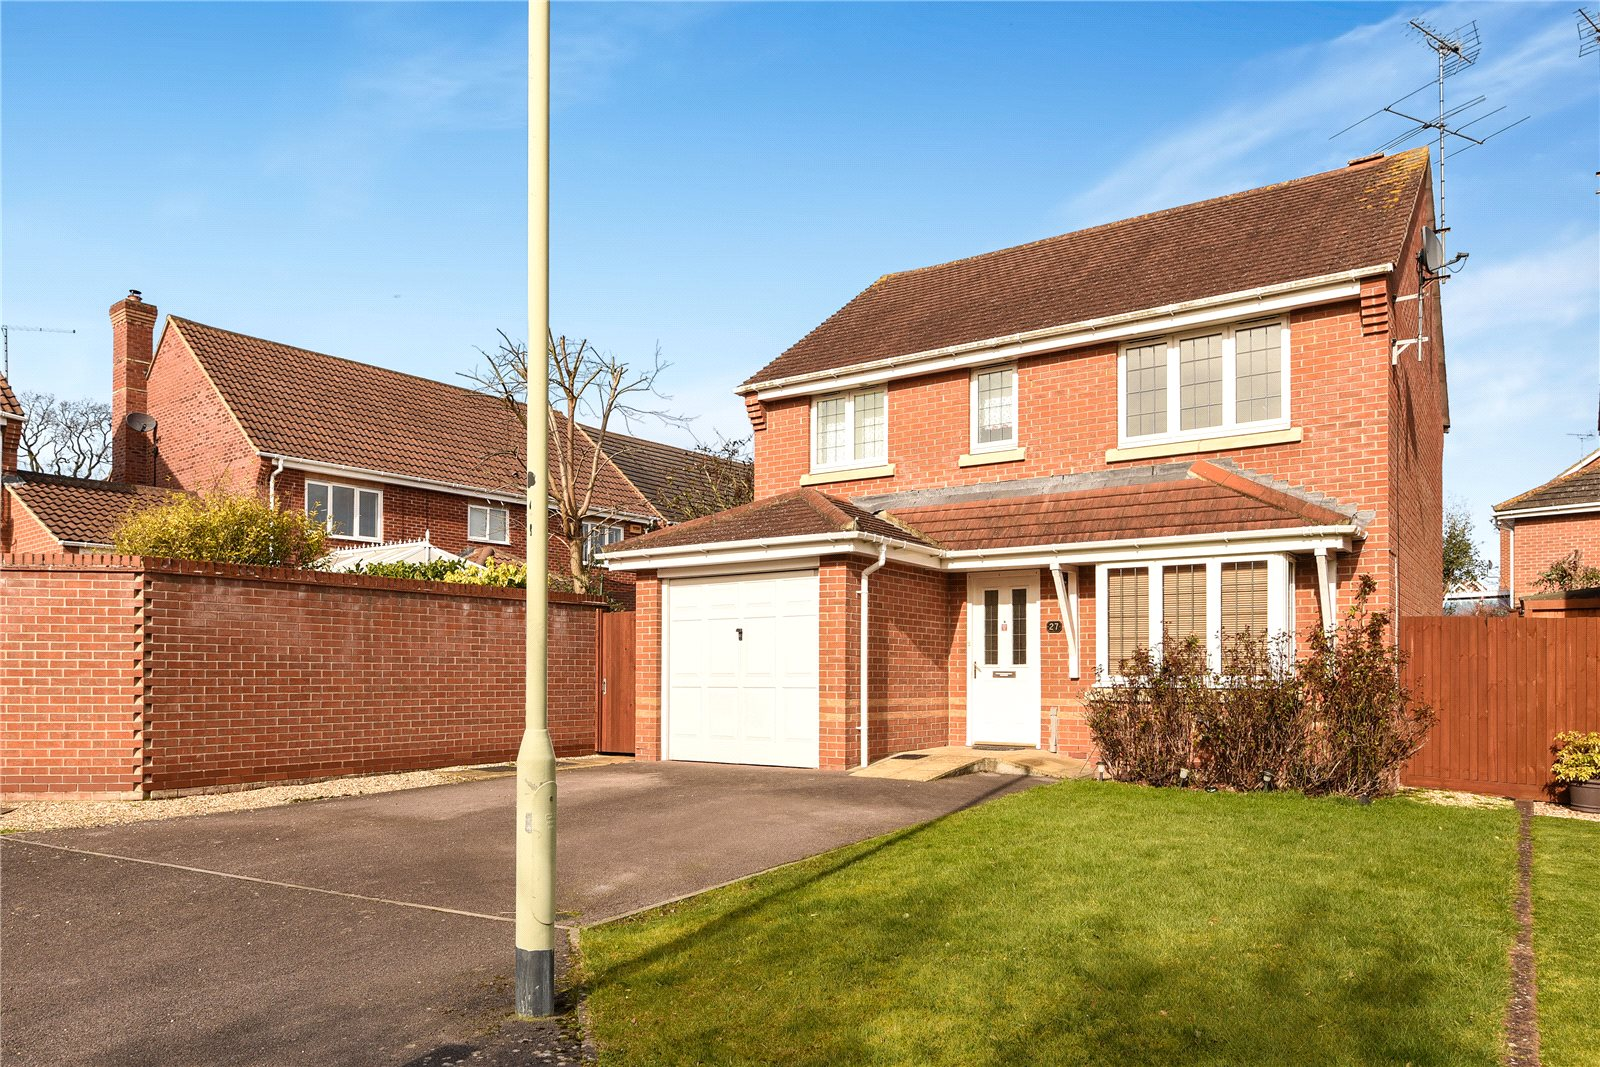 3 Bedrooms Detached House for rent in Arbery Way, Arborfield, Reading, Berkshire, RG2